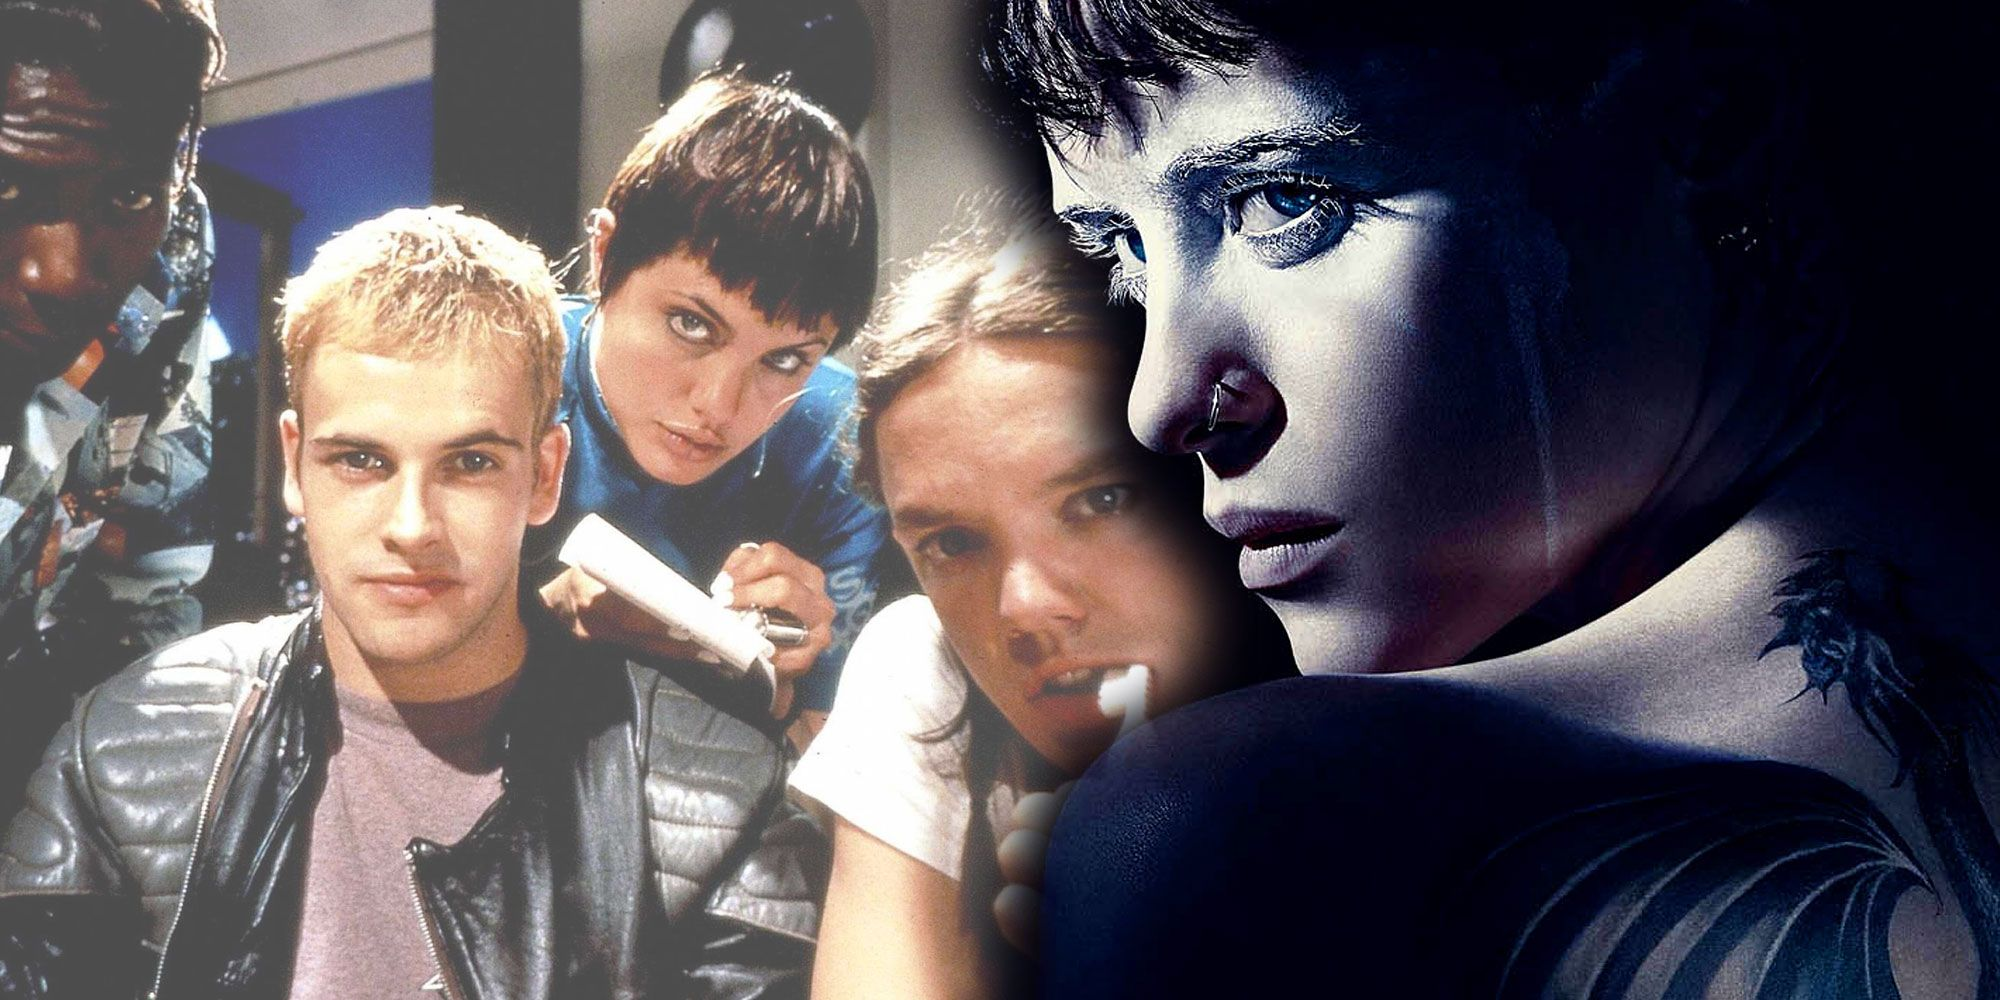 The Girl in the Spider's Web Is Hackers For the Millennial Generation